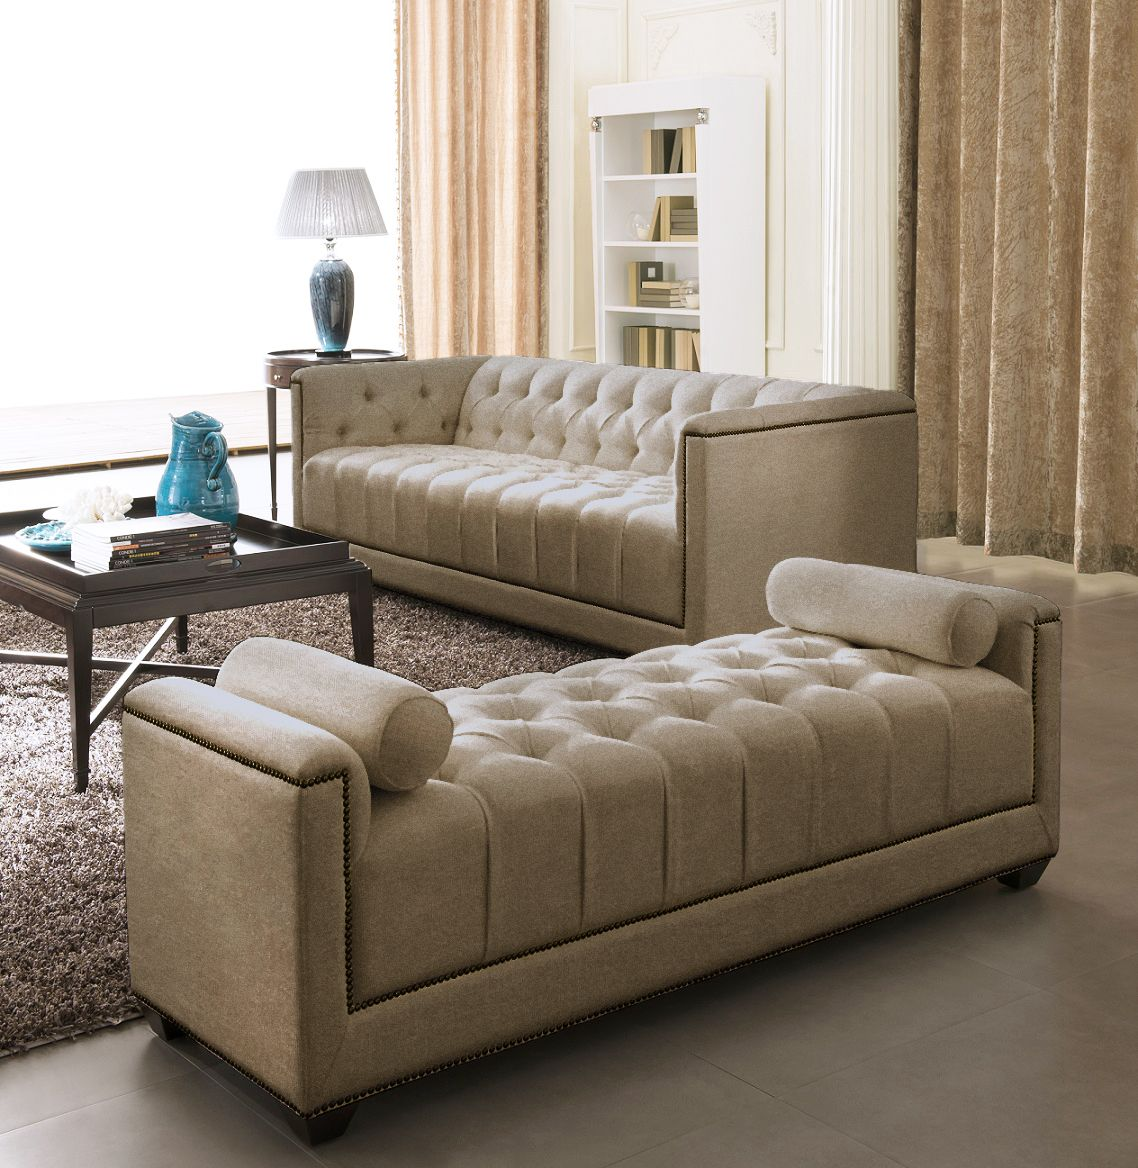 Gentil Modern Sofa Set Designs For Living Room